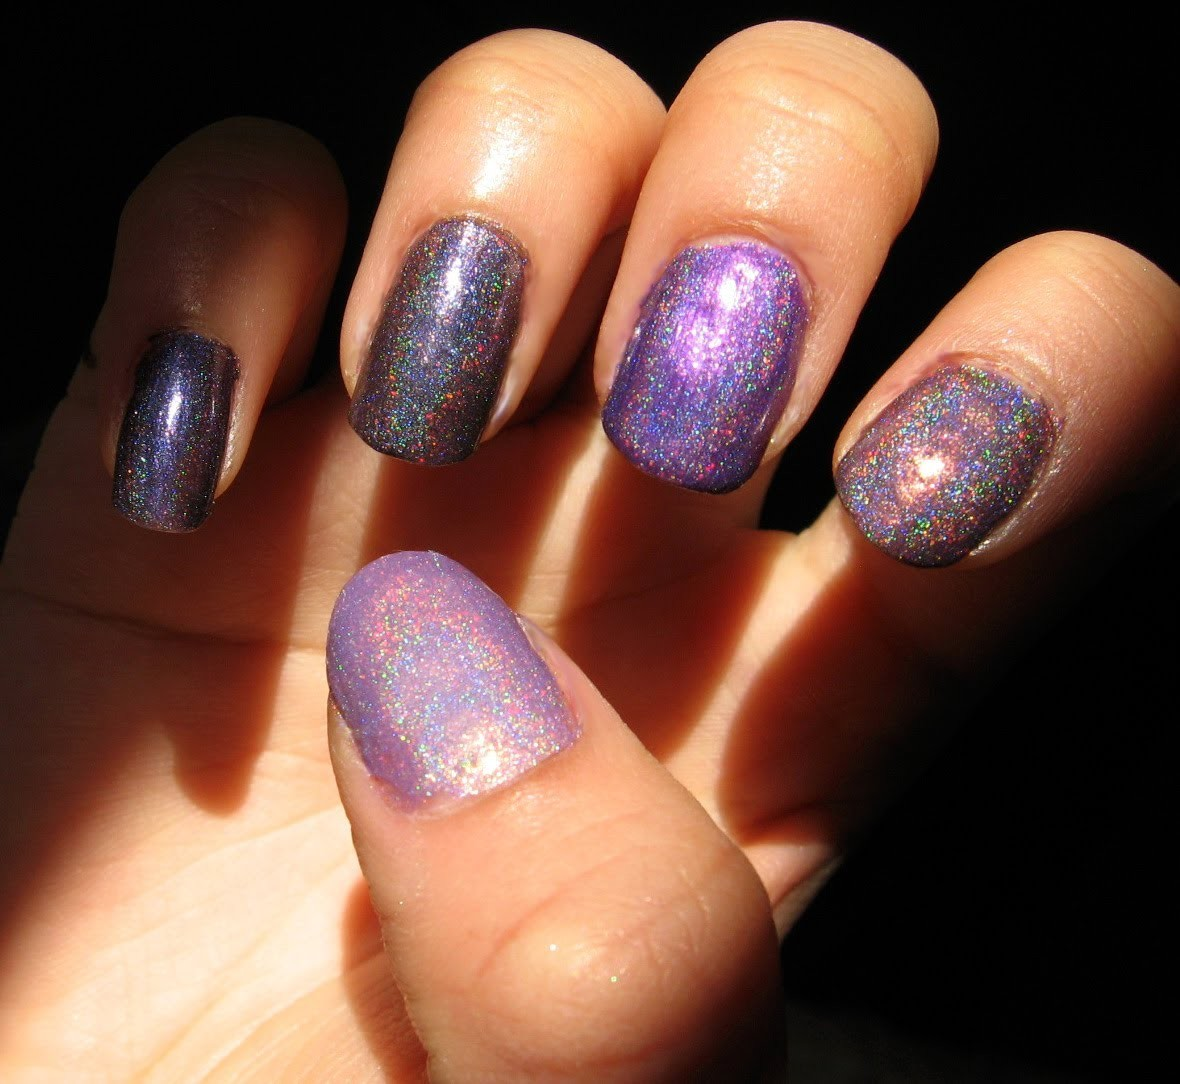 D.I.Y: How to Make Your Own Holographic Nail Polish